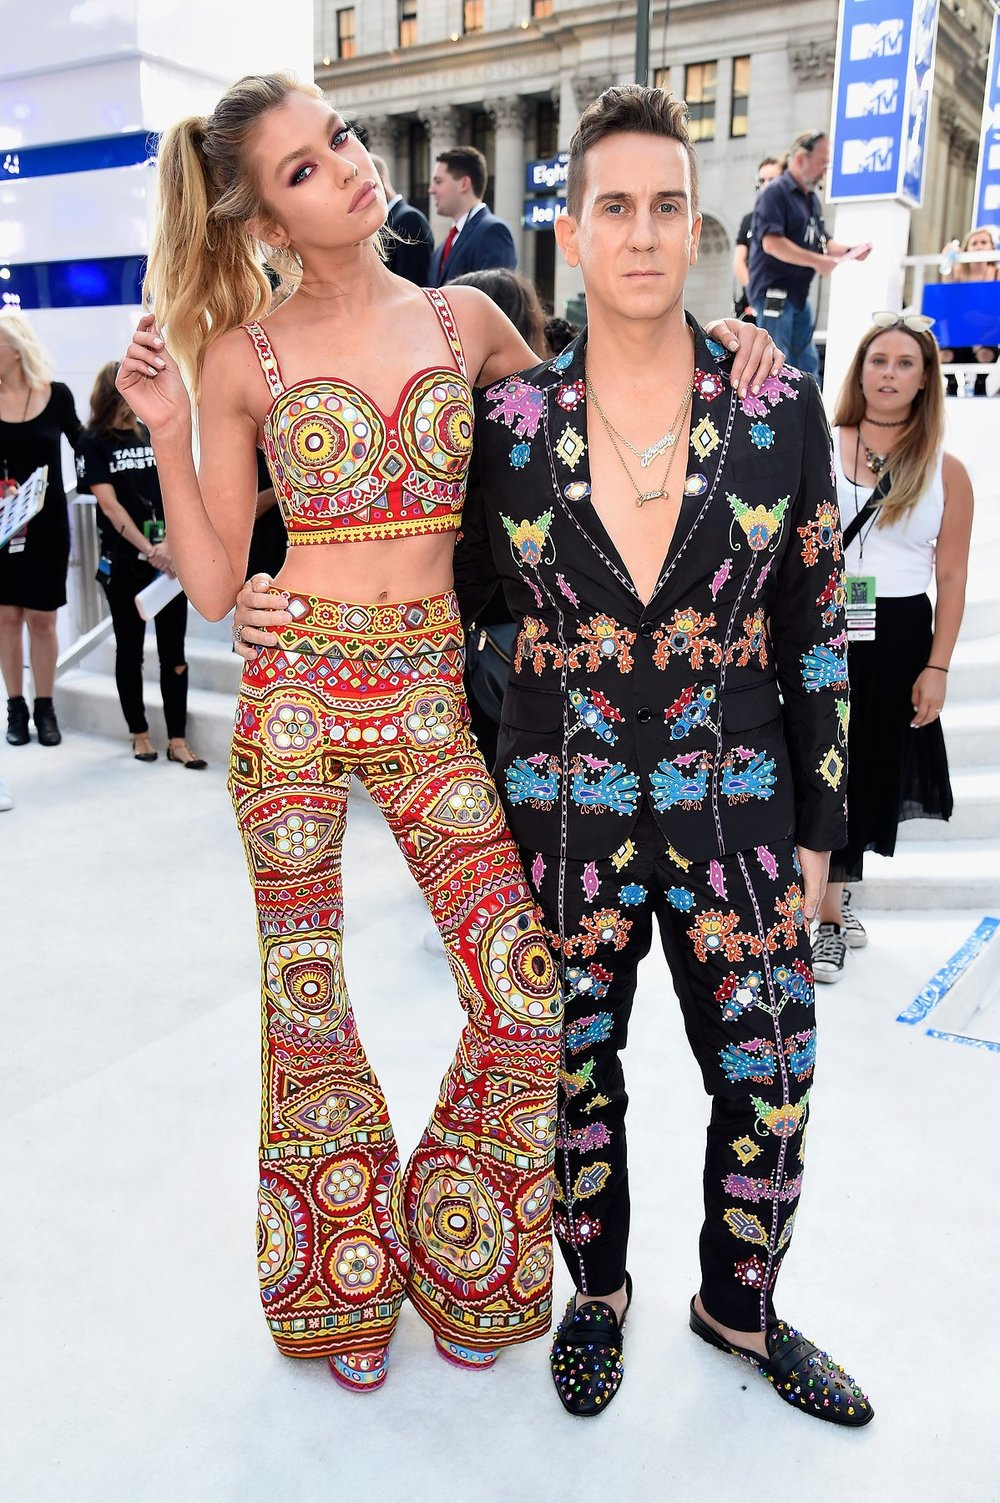 I do love a good coordinated outfit and this pair are certainly making a statement.Jeremy Scott is killing it in this sharp suit with it's flashy flair.